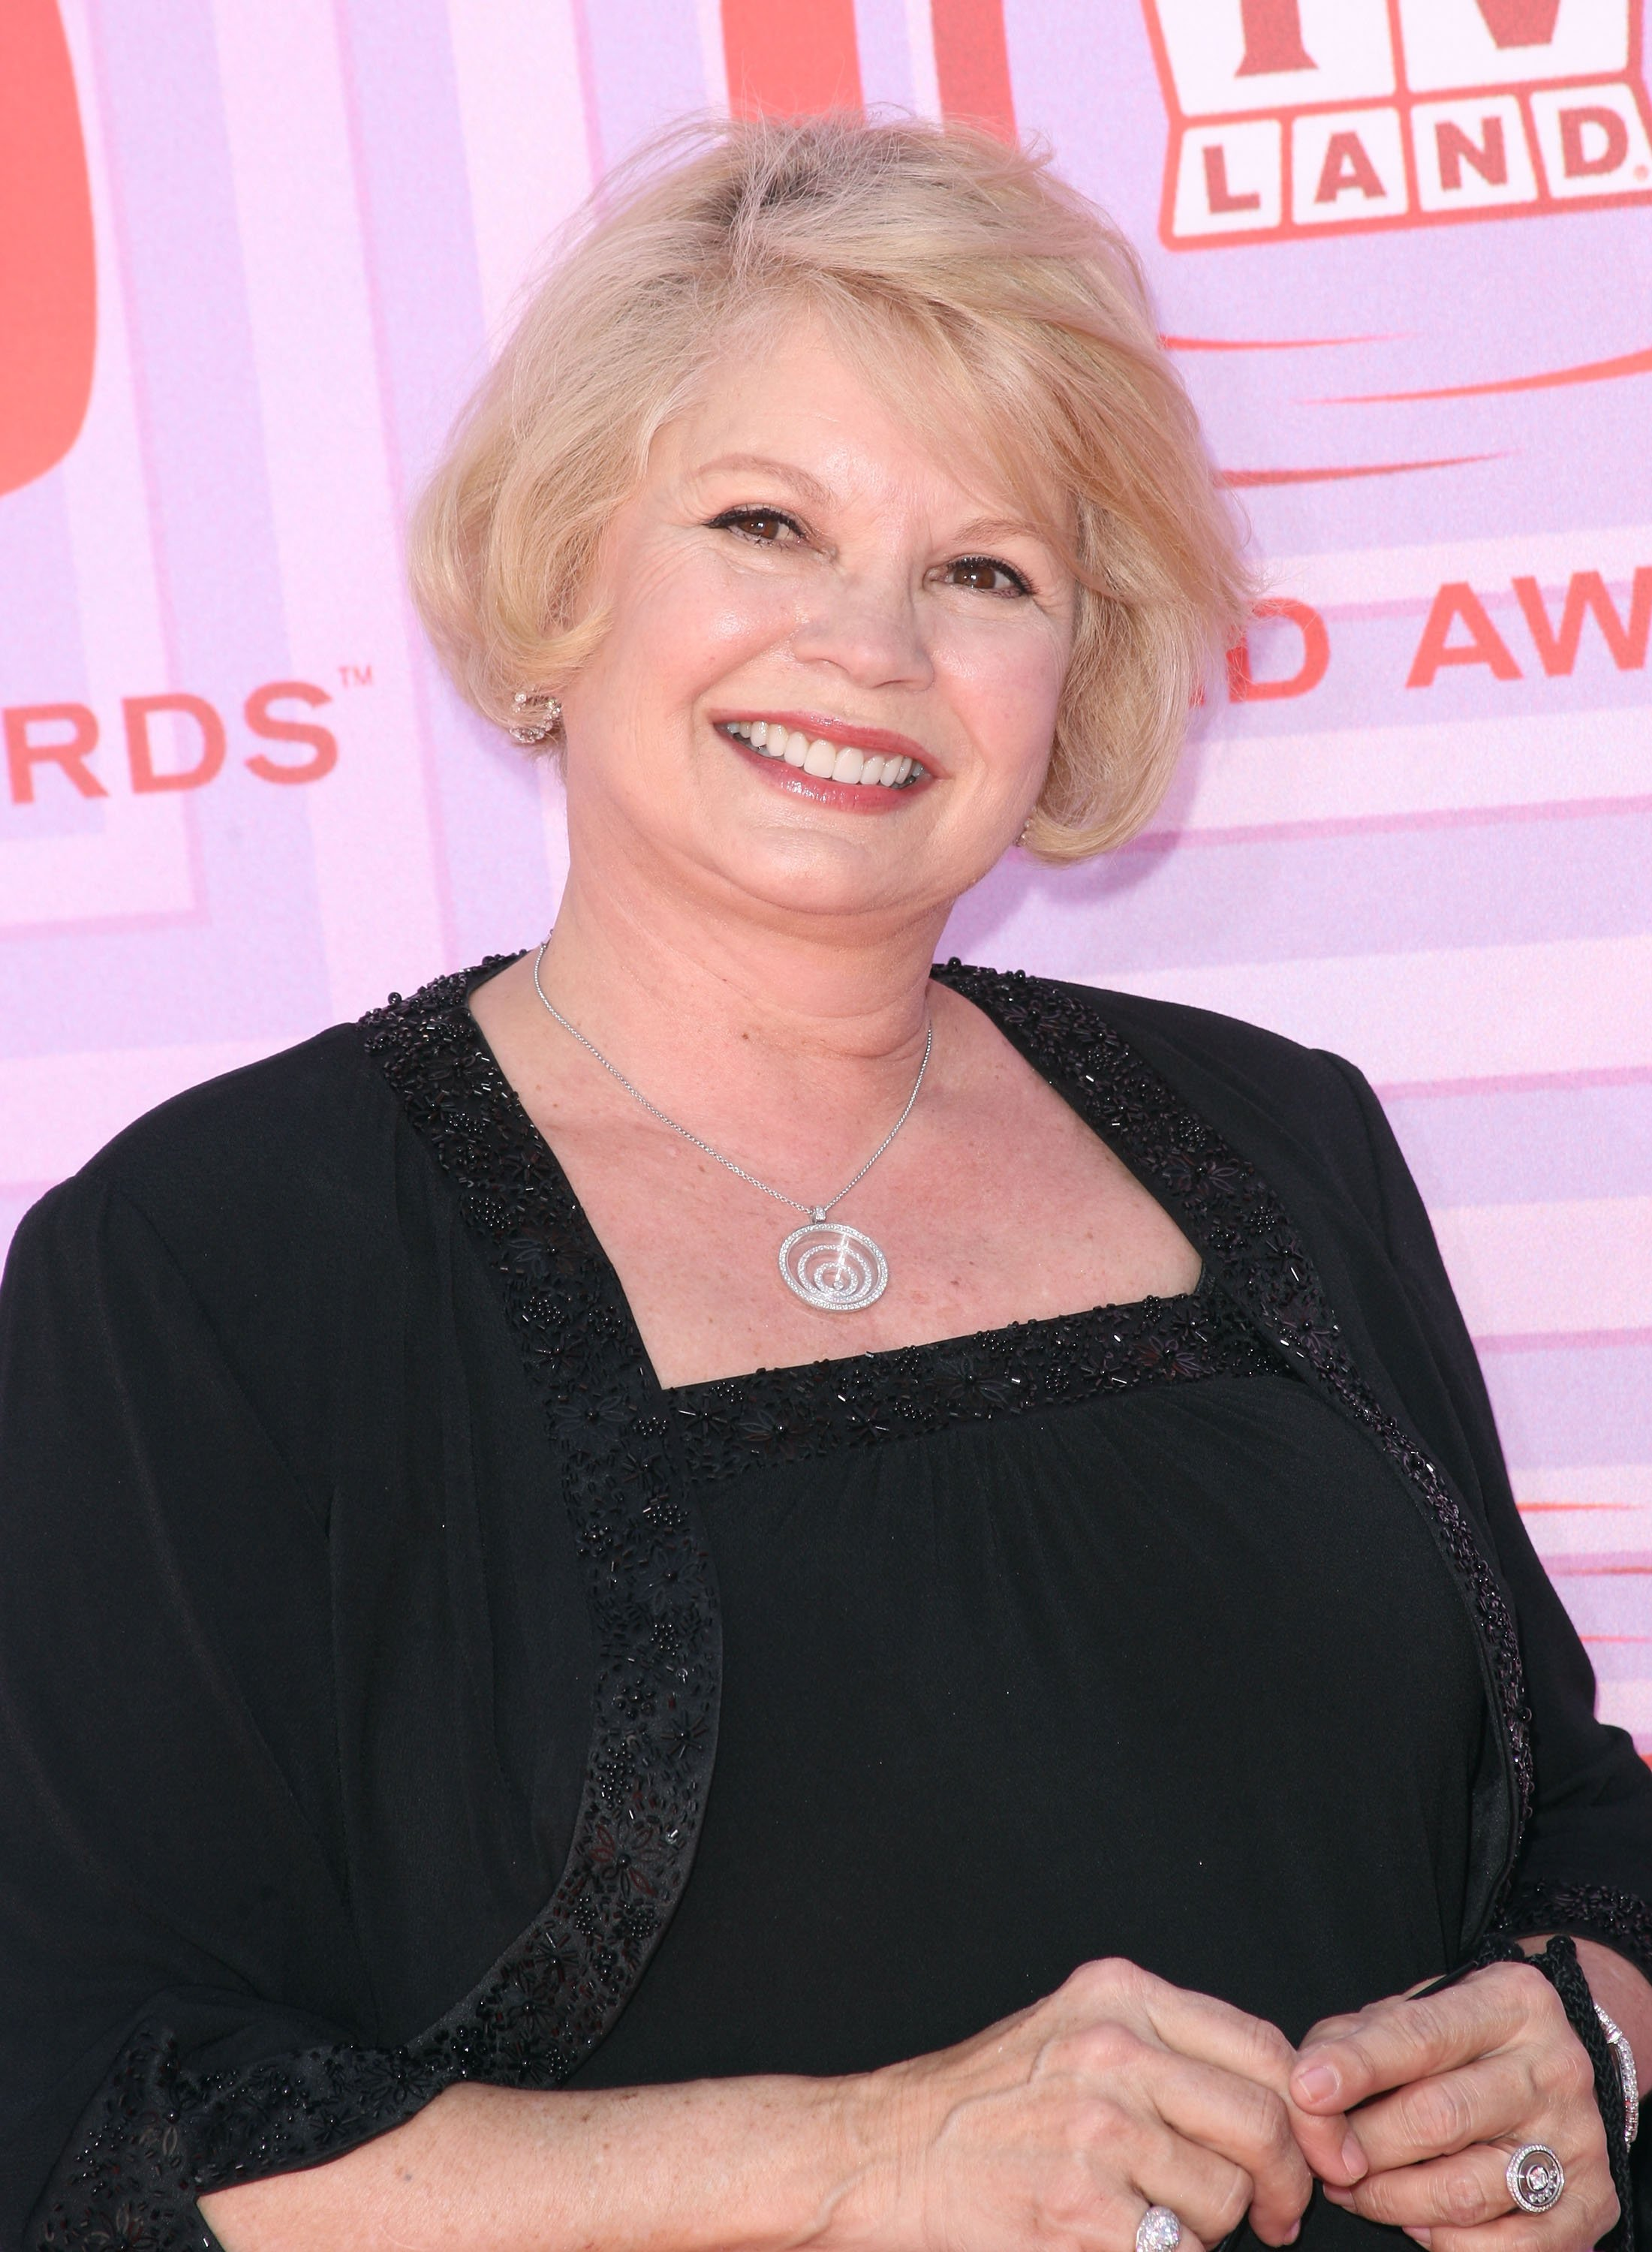 Kathy Garver on April 19, 2009 in Universal City, California | Source: Getty Images/Global Images Ukraine